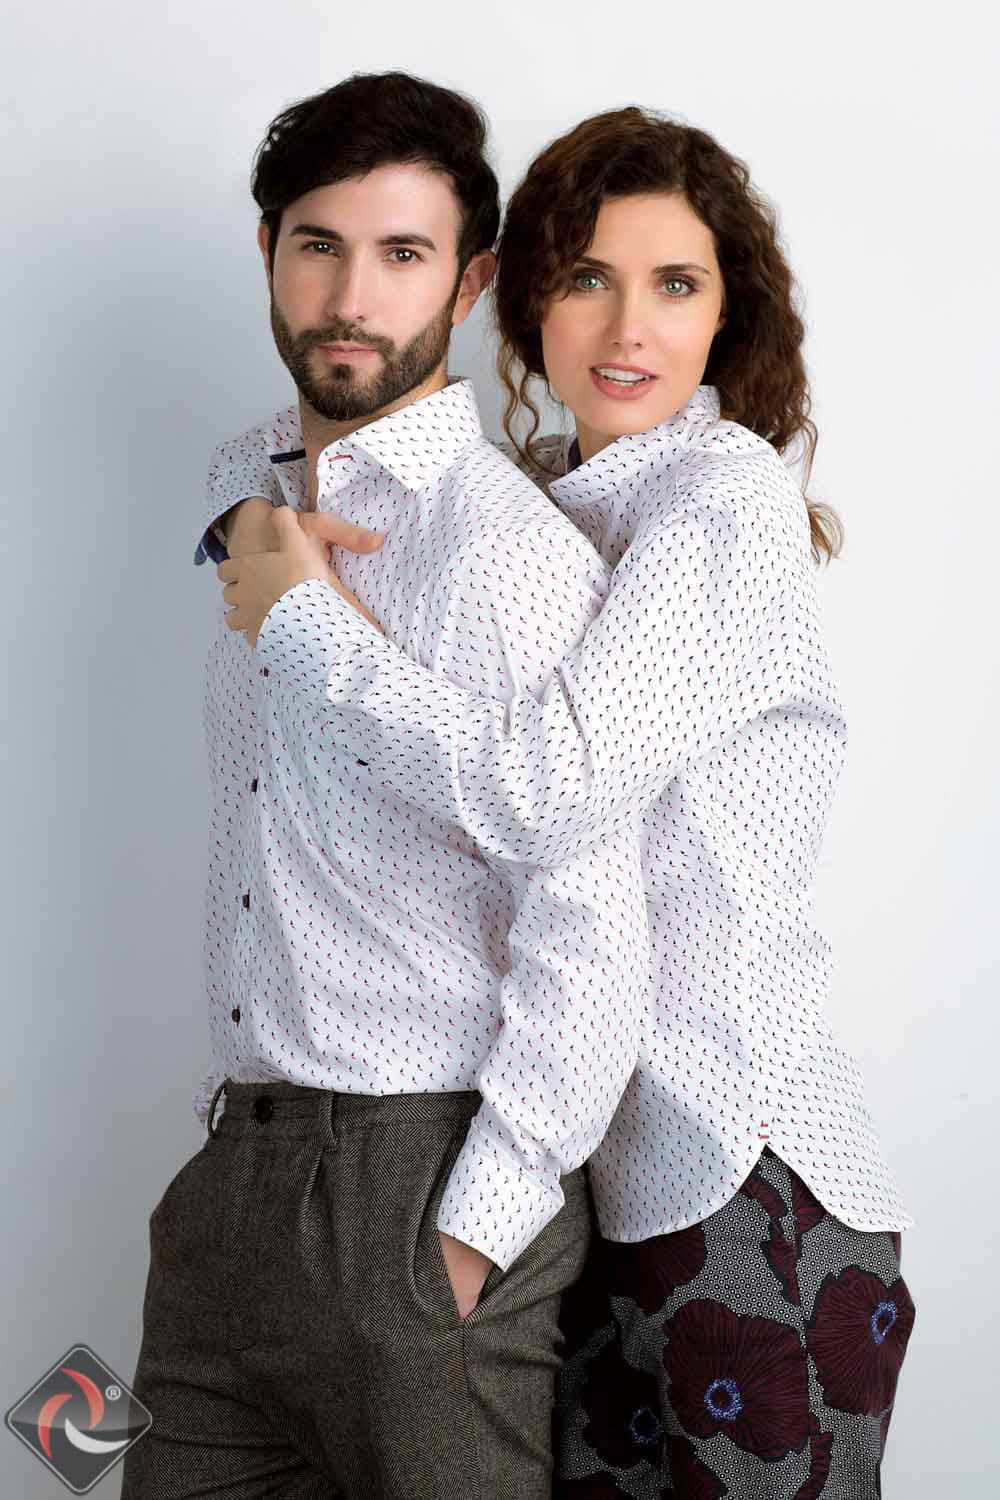 Couple - Modeling Photoshoot